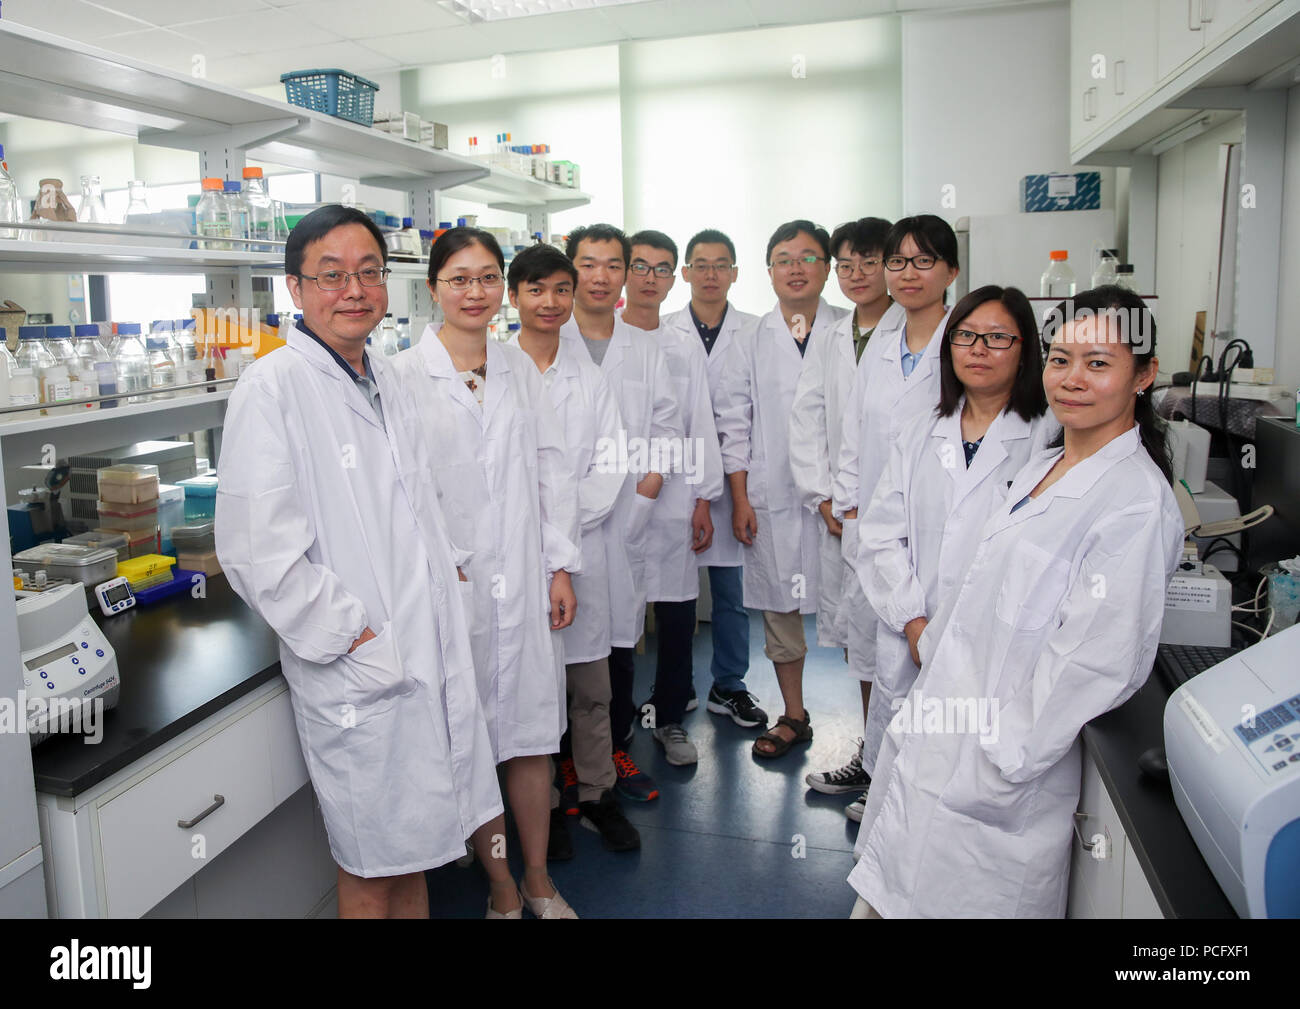 (180802) -- SHANGHAI, Aug. 2, 2018 (Xinhua) -- Qin Zhongjun,  a molecular biologist, and his team and students pose for photo at the Center for Excellence in Molecular Plant Sciences, Shanghai Institute of Plant Physiology and Ecology, of Chinese Academy of Sciences in Shanghai, east China, July 31, 2018. Brewer's yeast, one-third of whose genome is said to share ancestry with a human's, has 16 chromosomes. However, Chinese scientists have managed to fit nearly all its genetic material into just one chromosome while not affecting the majority of its functions, according to a paper released Thu - Stock Image